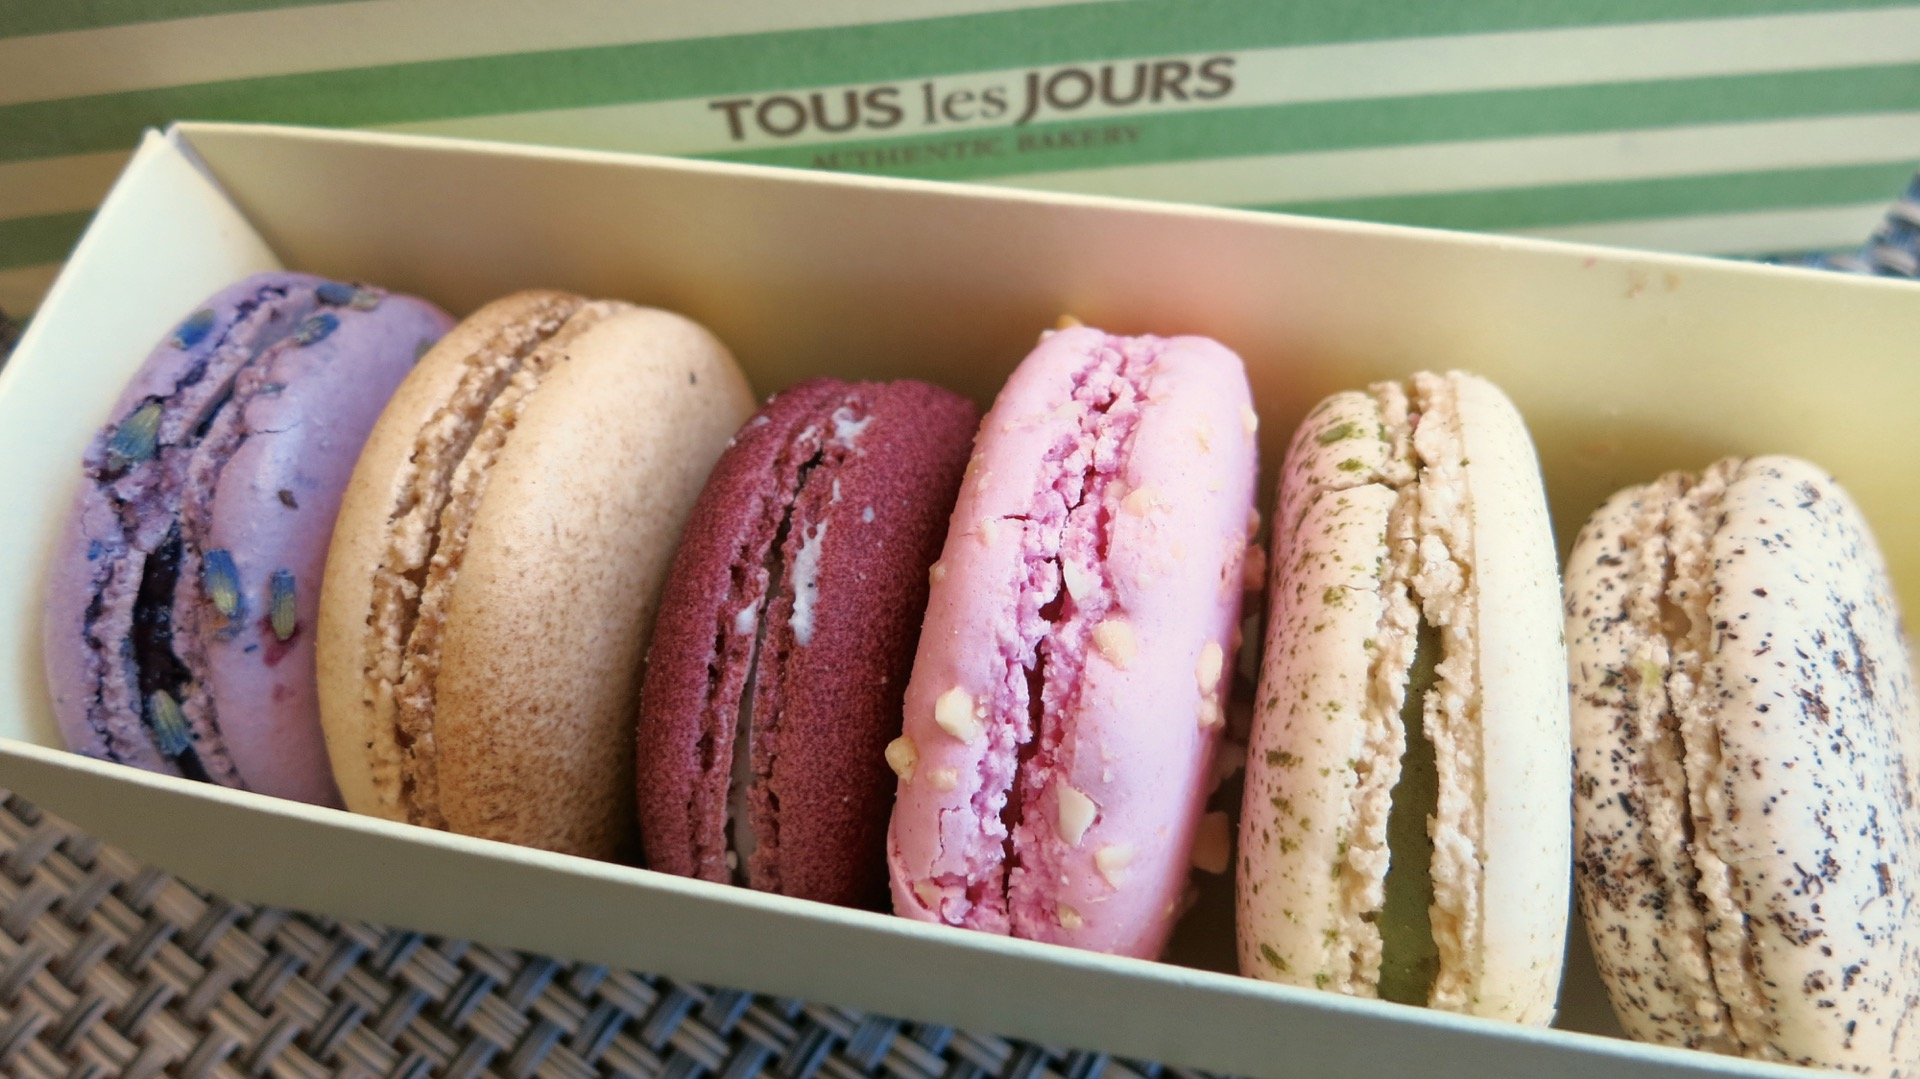 It's hard to top the sheer number of flavors available at Tous Les Jours.